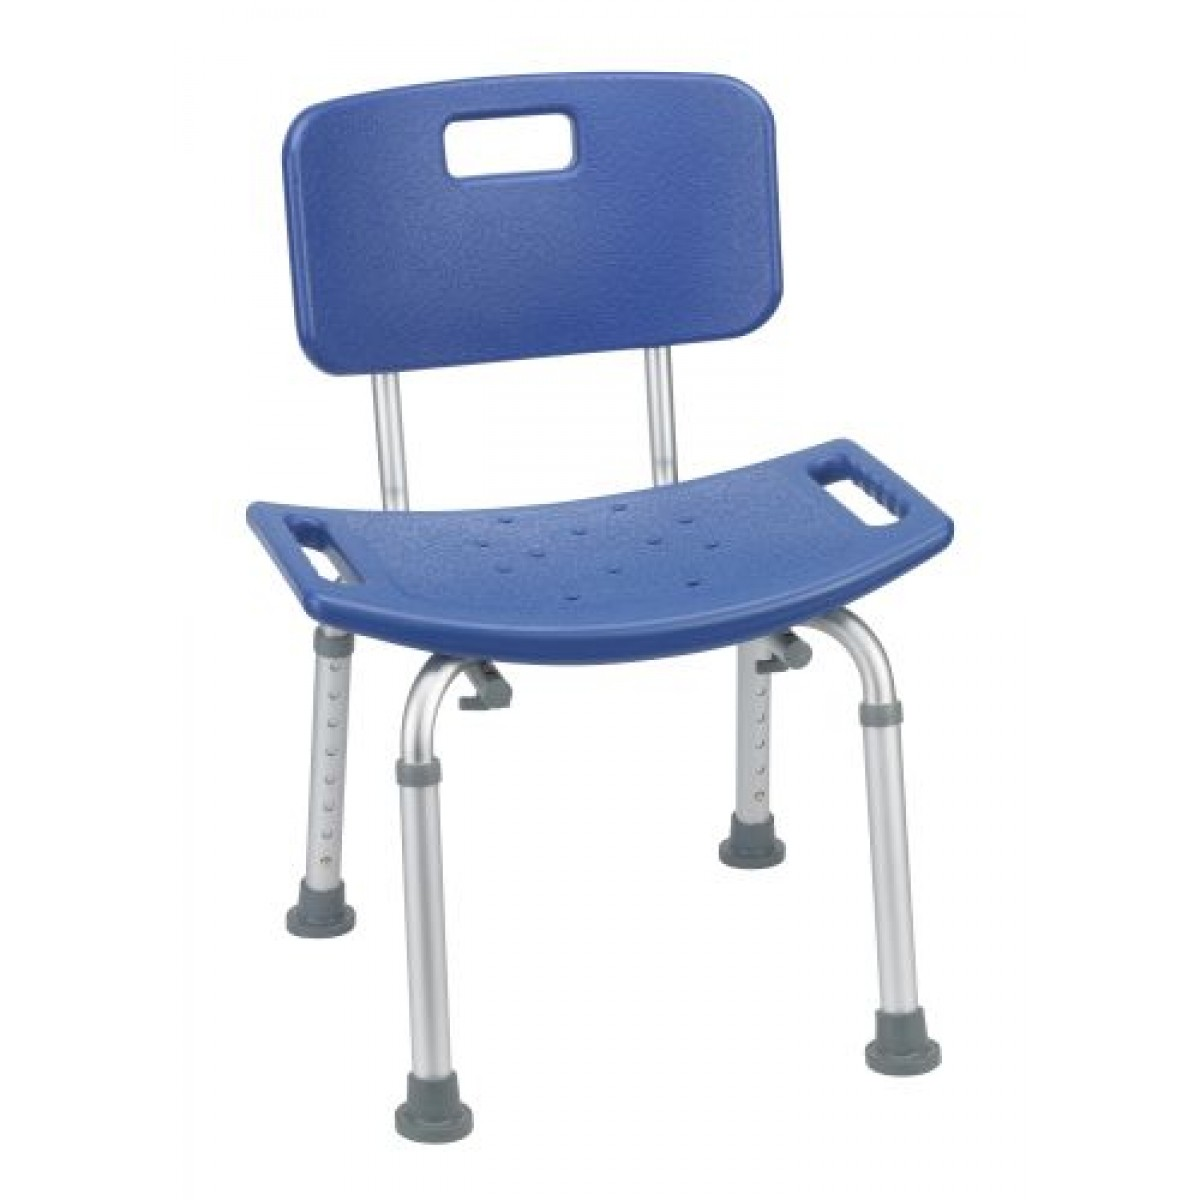 Bathroom Safety Shower Tub Bench Chair by Drive Medical - 12202KDRB-1